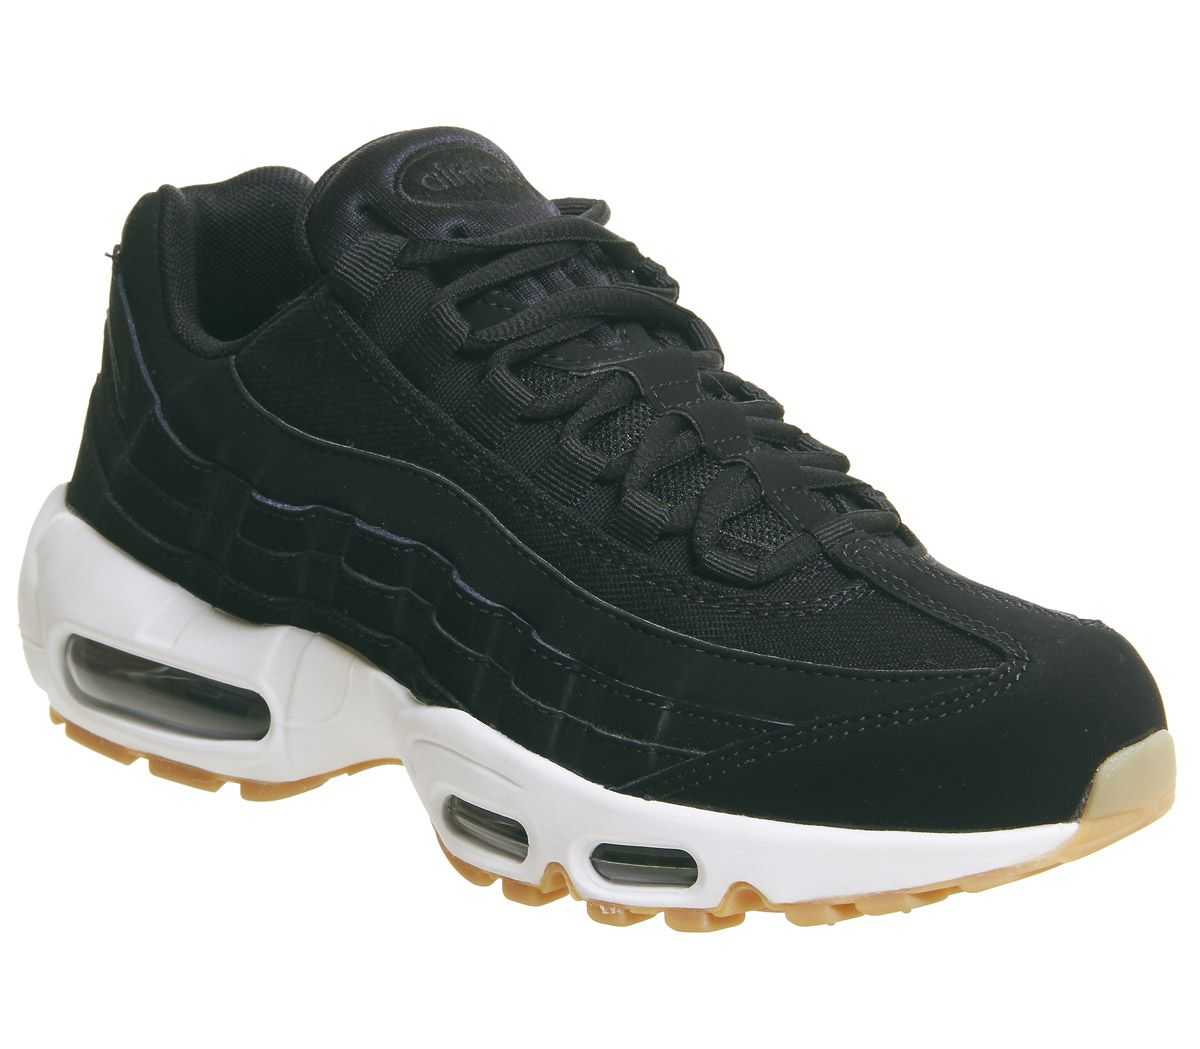 Nike Air Max 95 Trainers Black Anthracite Gum Brown White - Hers trainers